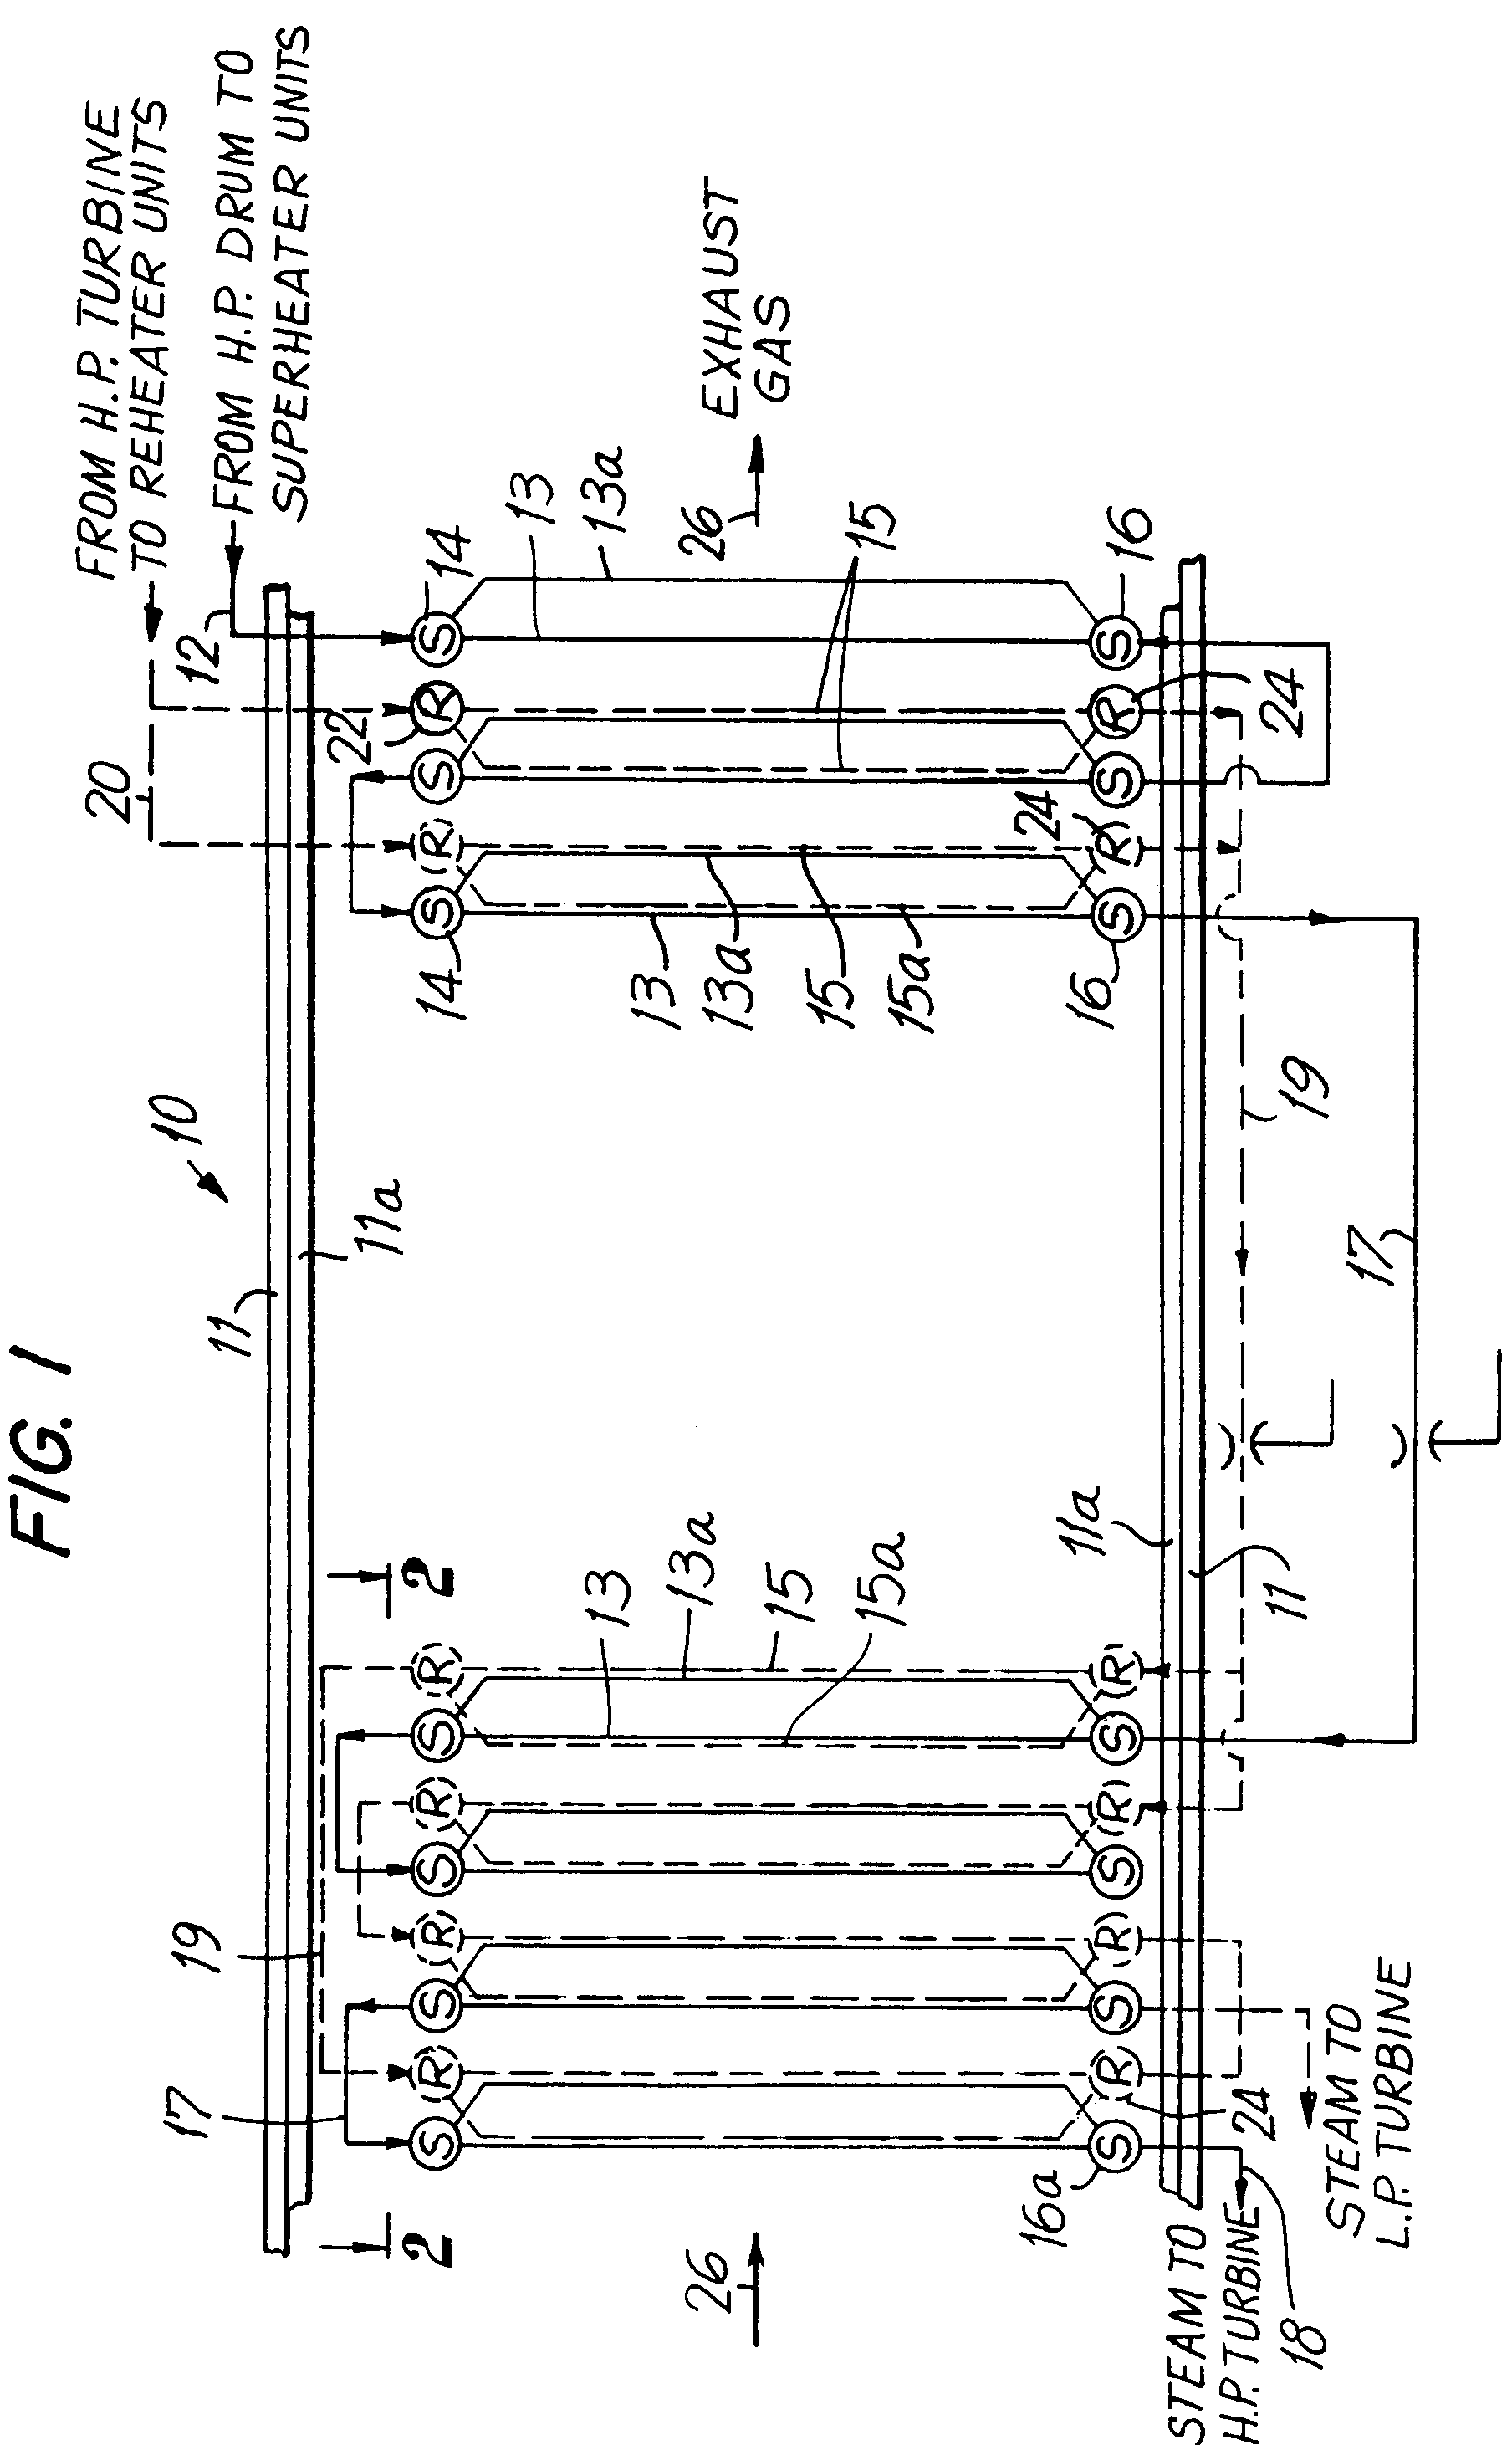 Patent EP A1 Superheater and reheater tube arrangement for